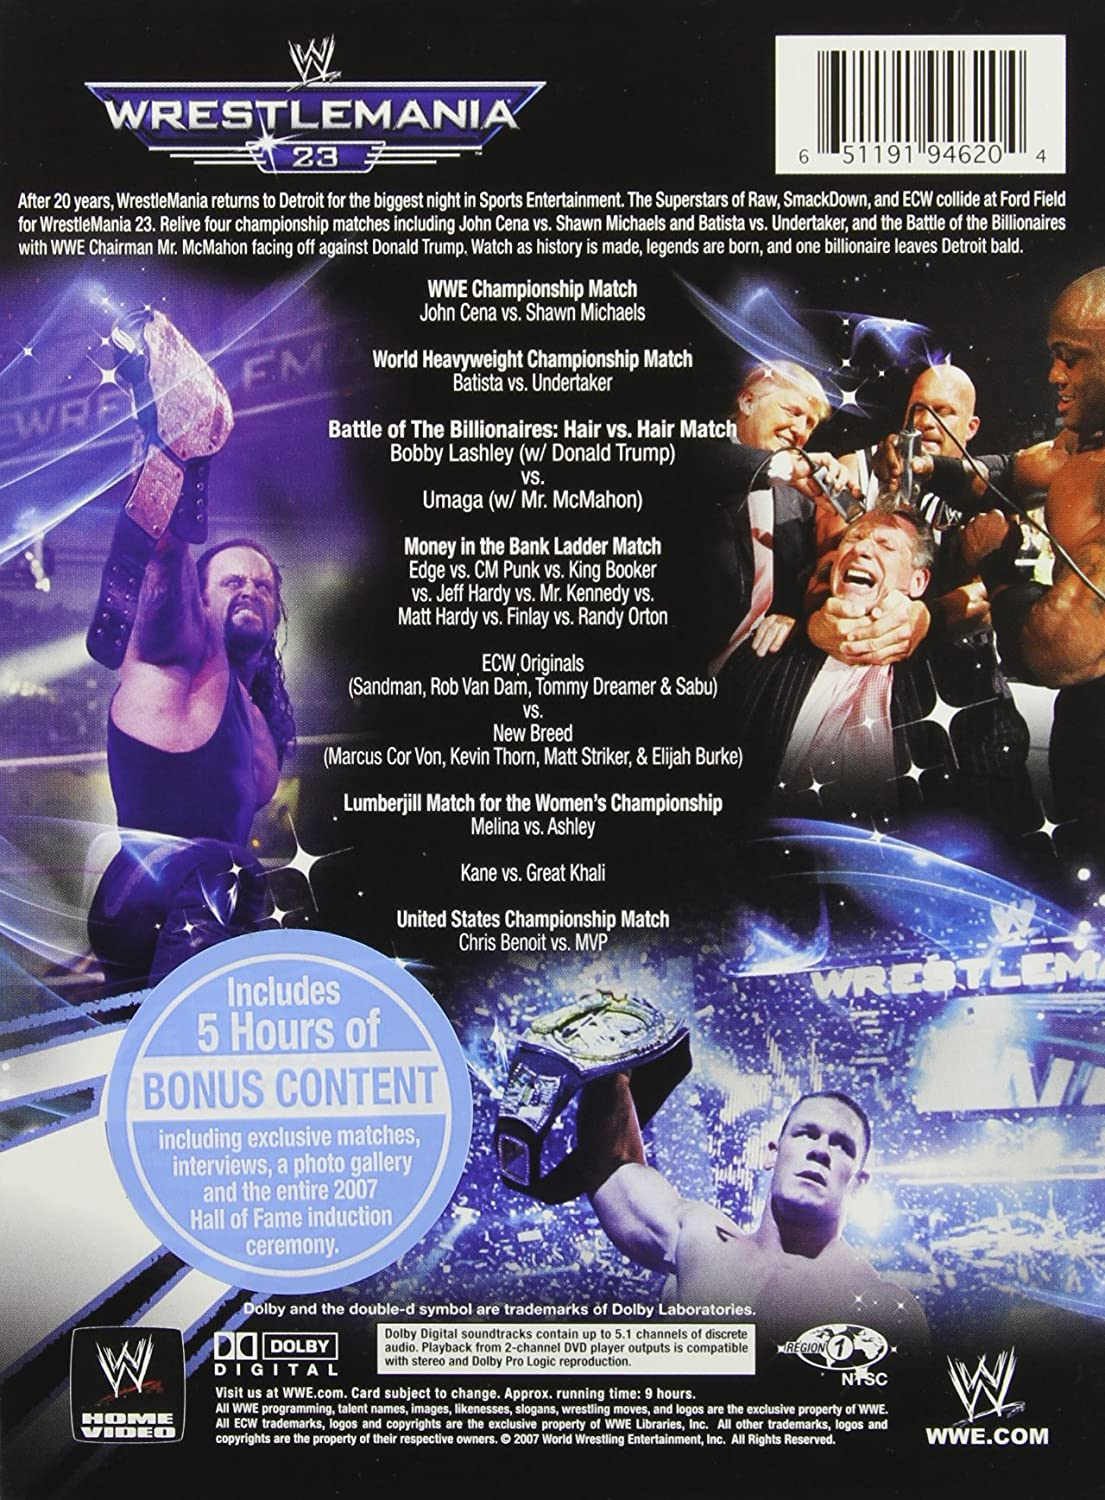 Amazon com: WWE: WrestleMania 23 (The Ultimate Limited Edition